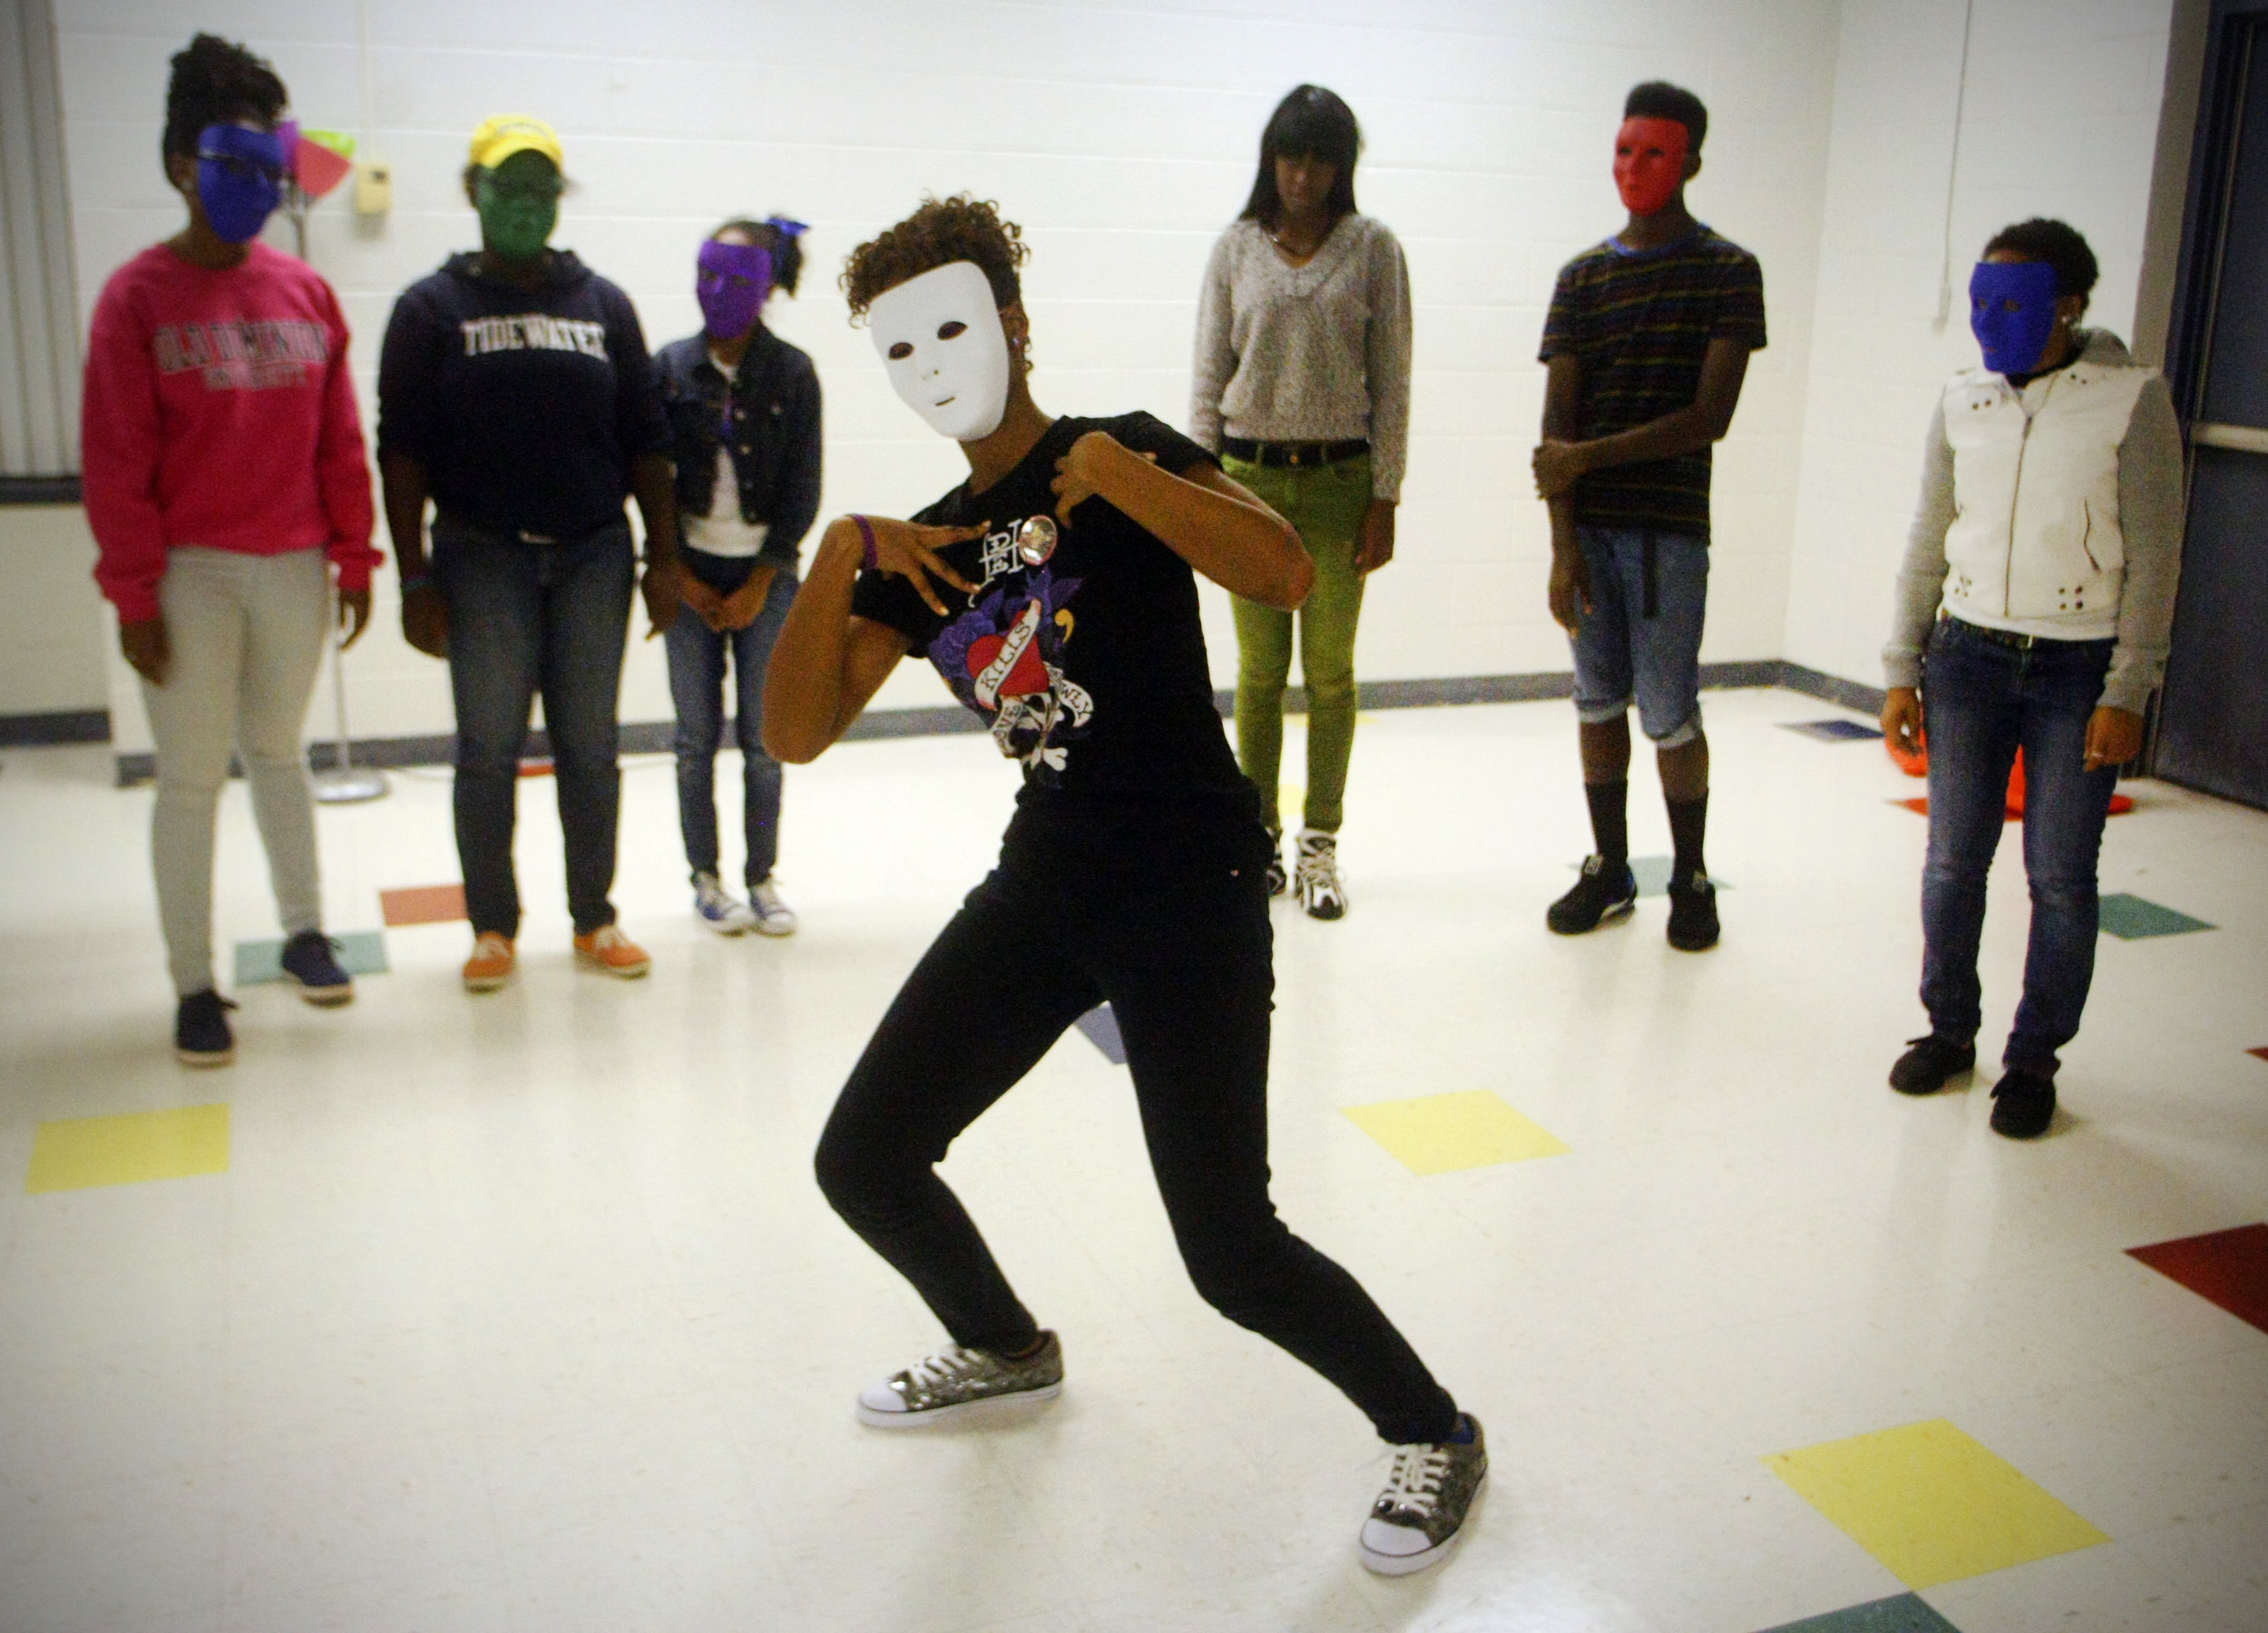 Zipporah Dailey, center, performs mime during the talent portion of the Teens With A Purpose.